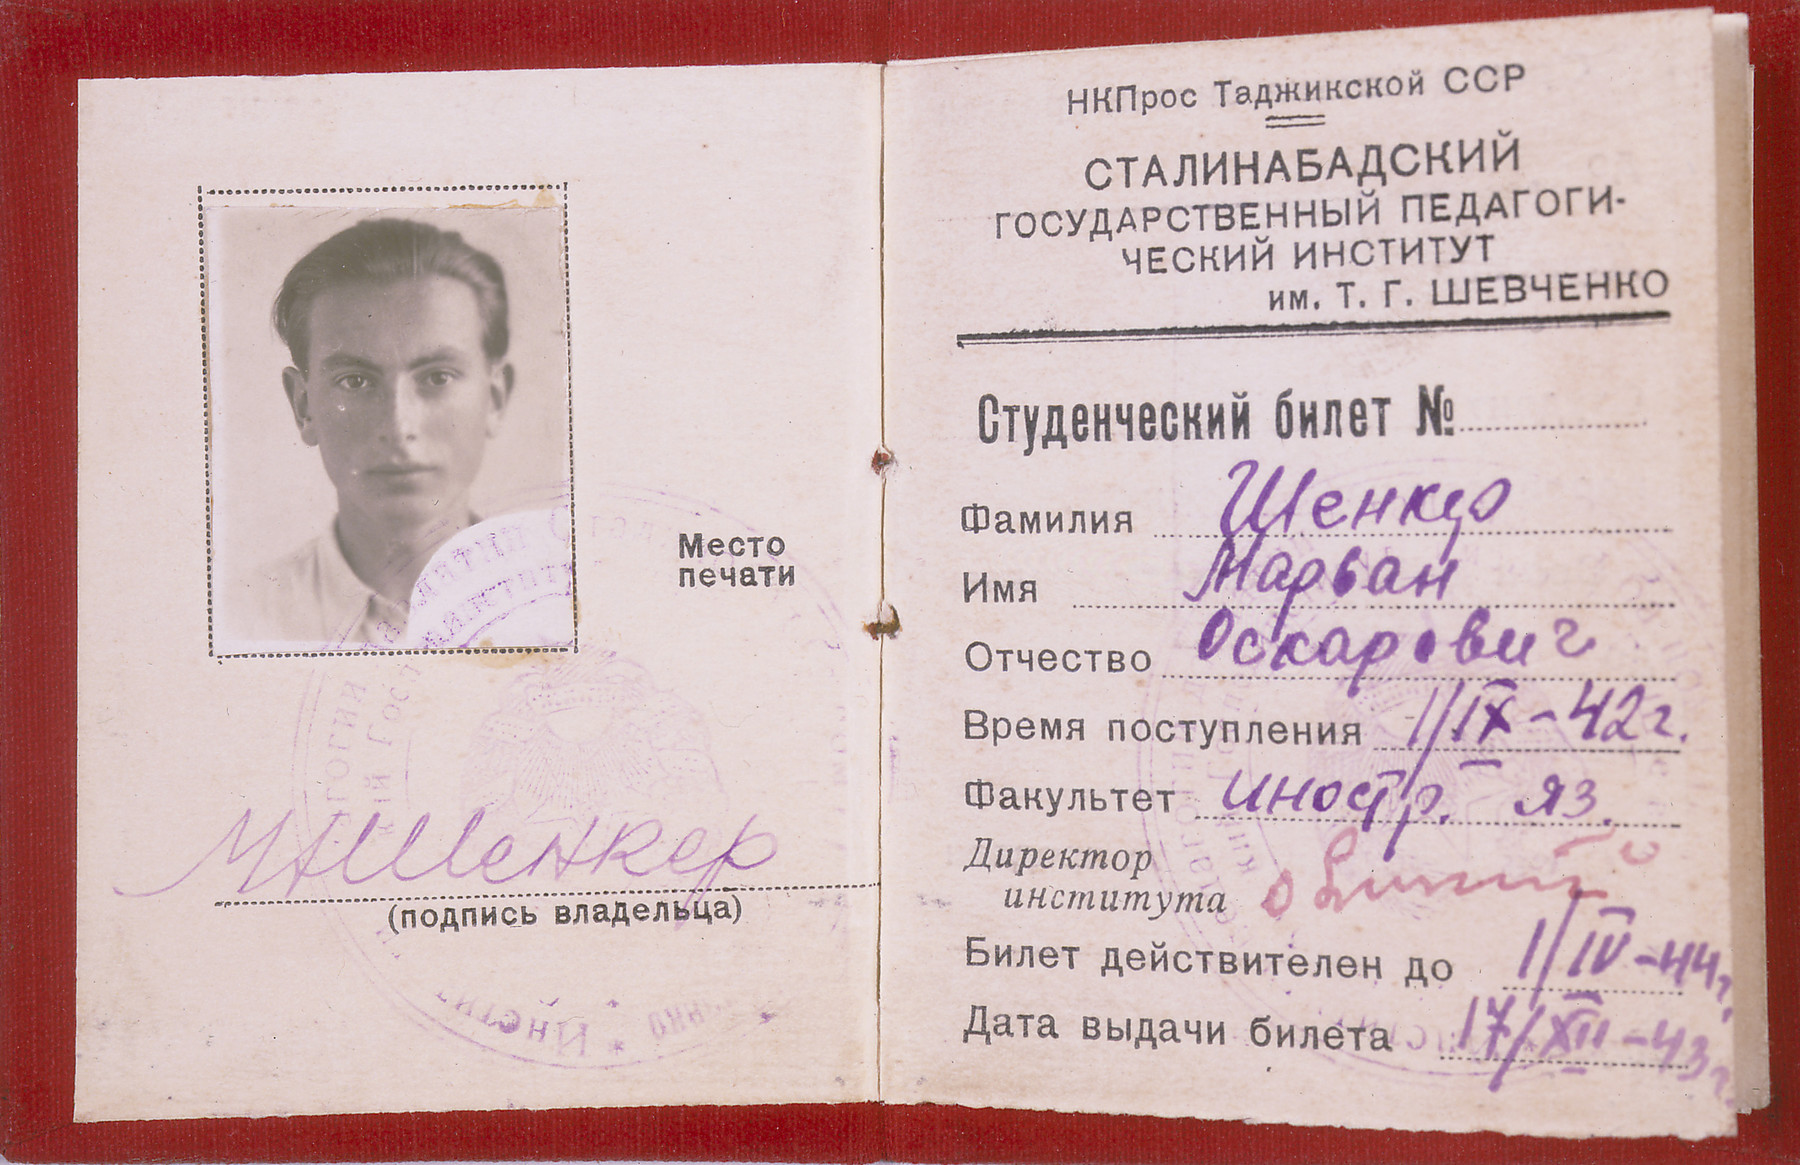 Russian student identification card issued to Alexander Schenker by the Stalinabad State Pedagogical Institute in Tadzhikistan.